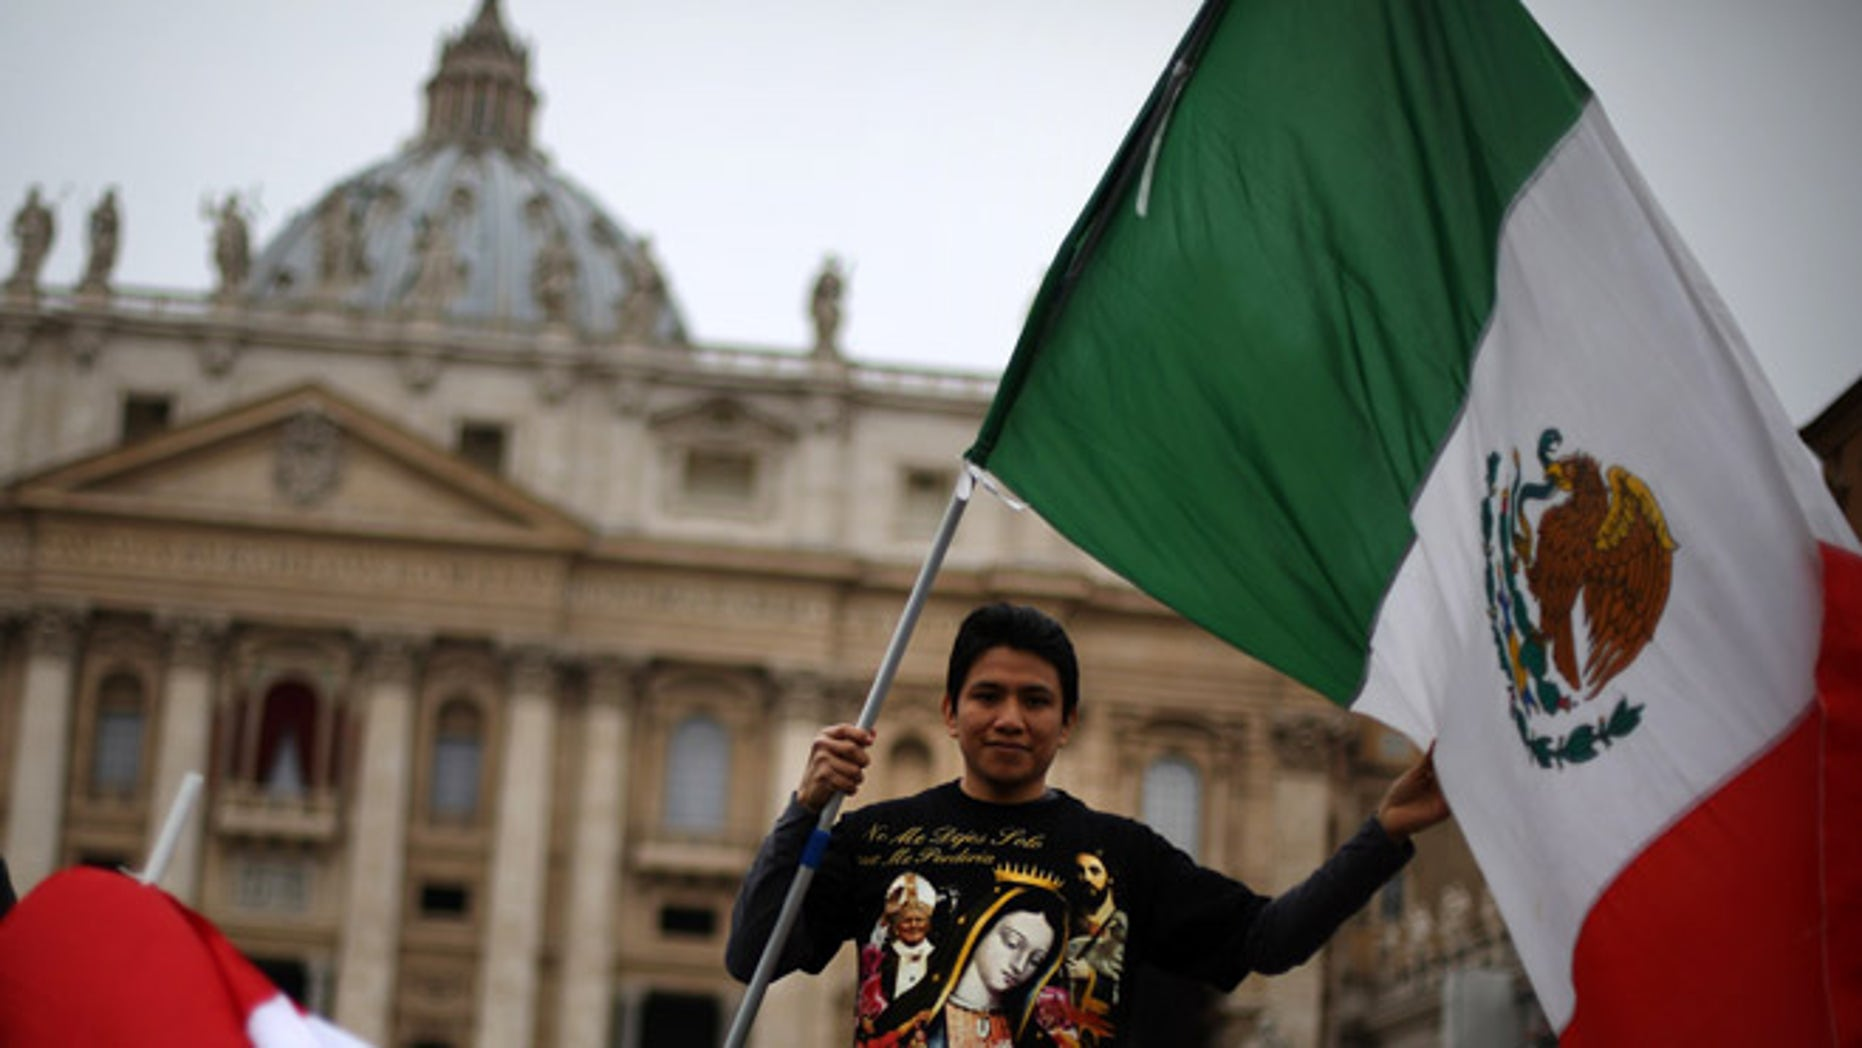 VATICAN CITY, VATICAN - MARCH 17:  A boy waves the flag of Mexico in St Peter's Square after Pope Francis gave his first Angelus blessing on March 17, 2013 in Vatican City, Vatican. The Vatican is preparing for the inauguration of Pope Francis on March 19, 2013 in St Peter's Square.  (Photo by Peter Macdiarmid/Getty Images)